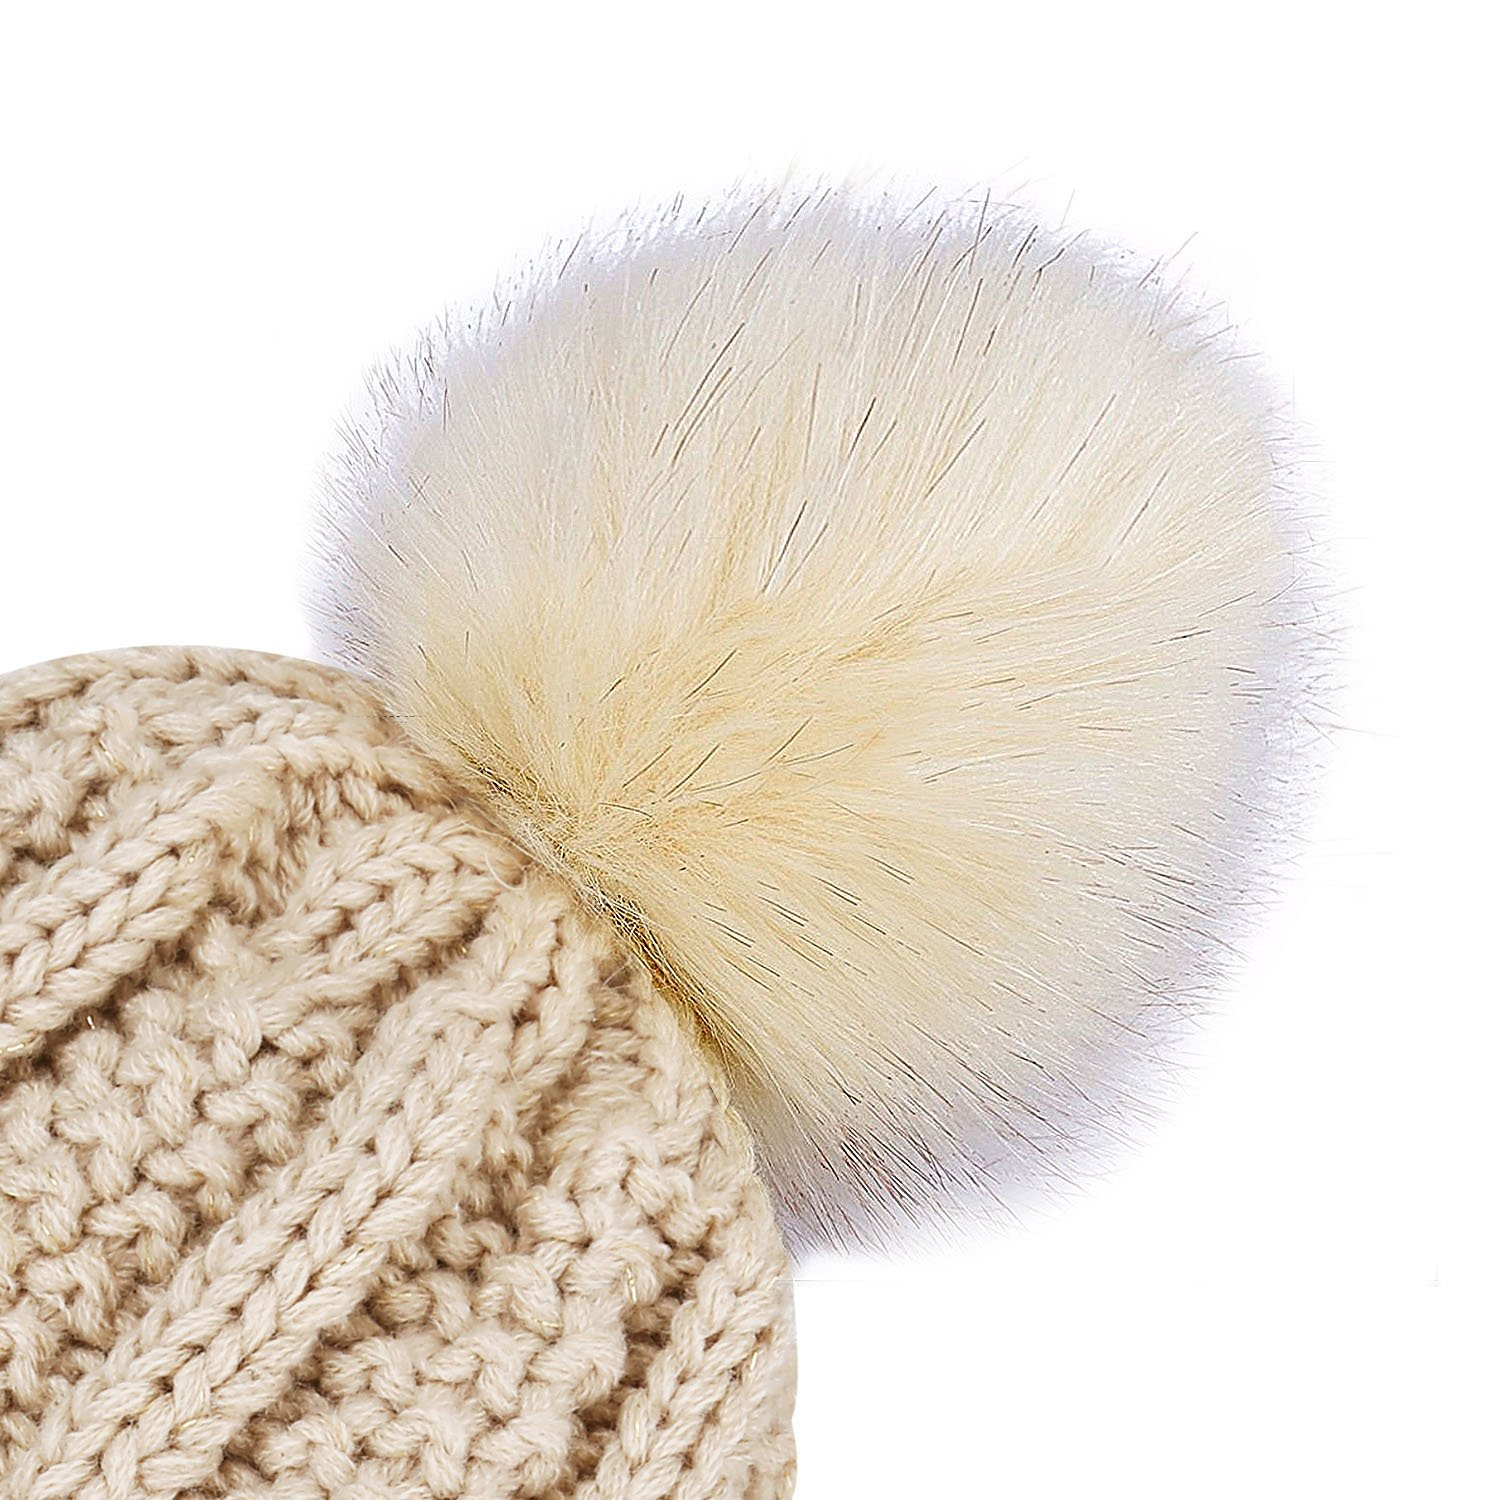 Women\'s Winter Warm Pom Pom Beanie Hat,Proking Warm Hand Knit Fleece Lined Beanie Hats for Women,Thick Slouchy Knie Snow Skull Ski Caps for Ladies(Beige)